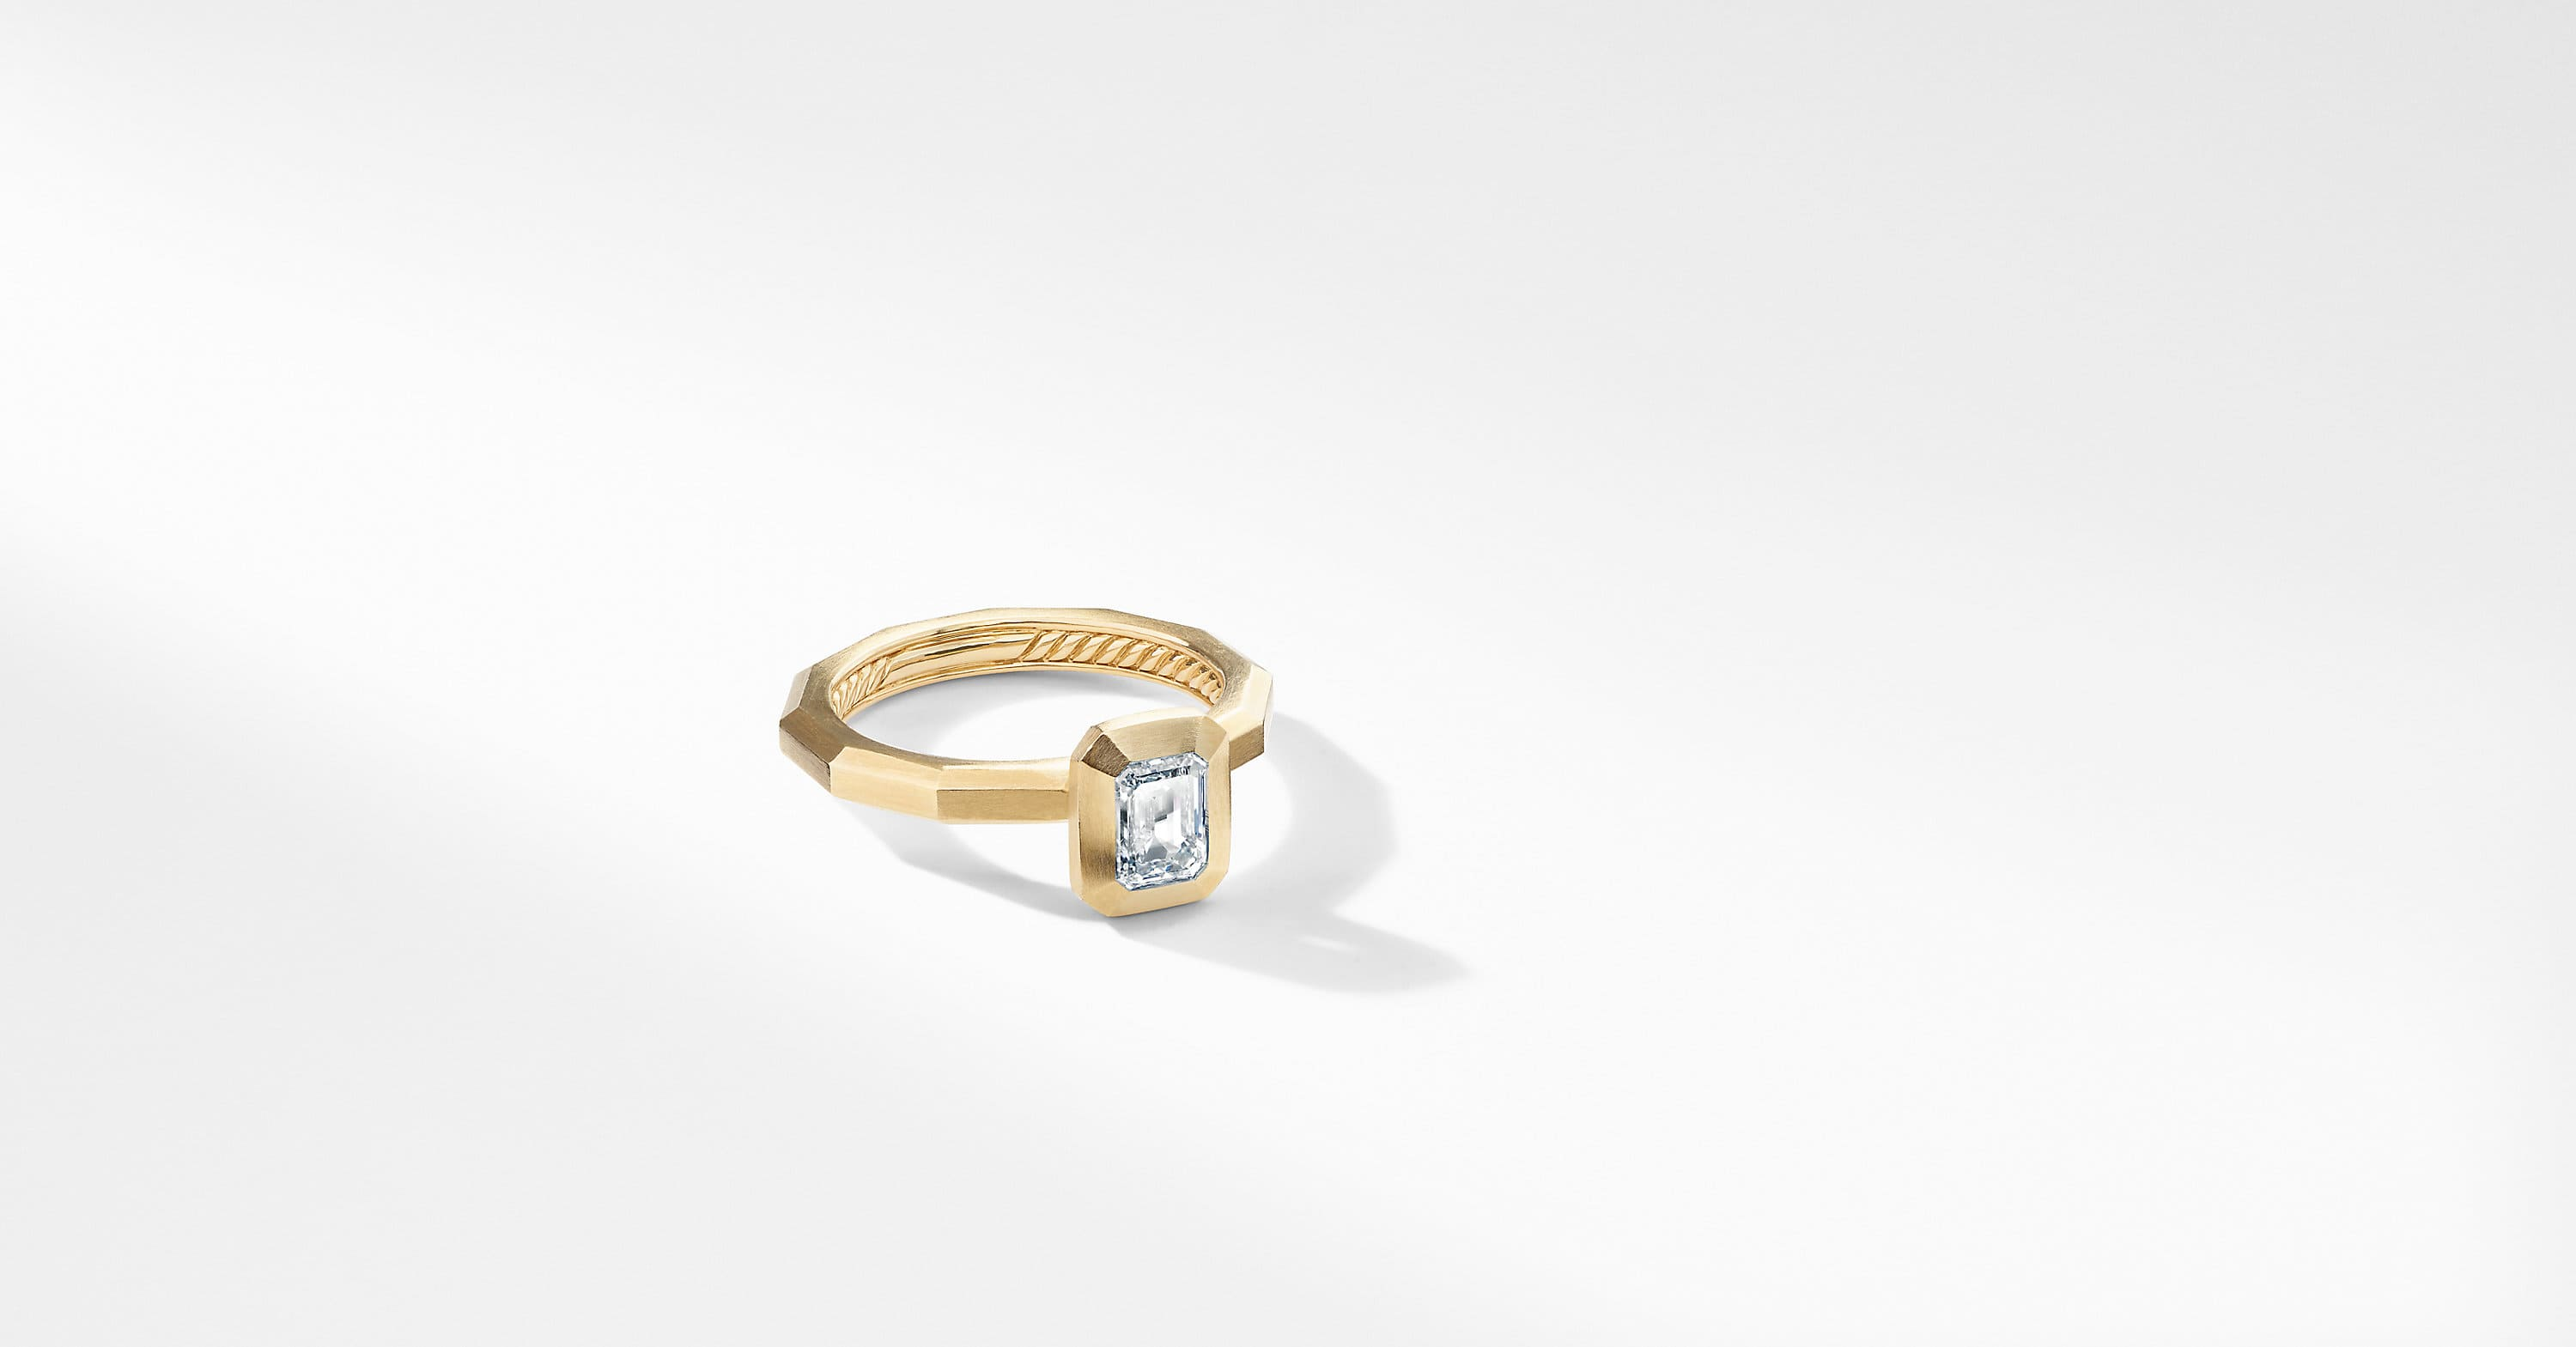 DY Delaunay Petite Engagement Ring in 18K Gold, Emerald